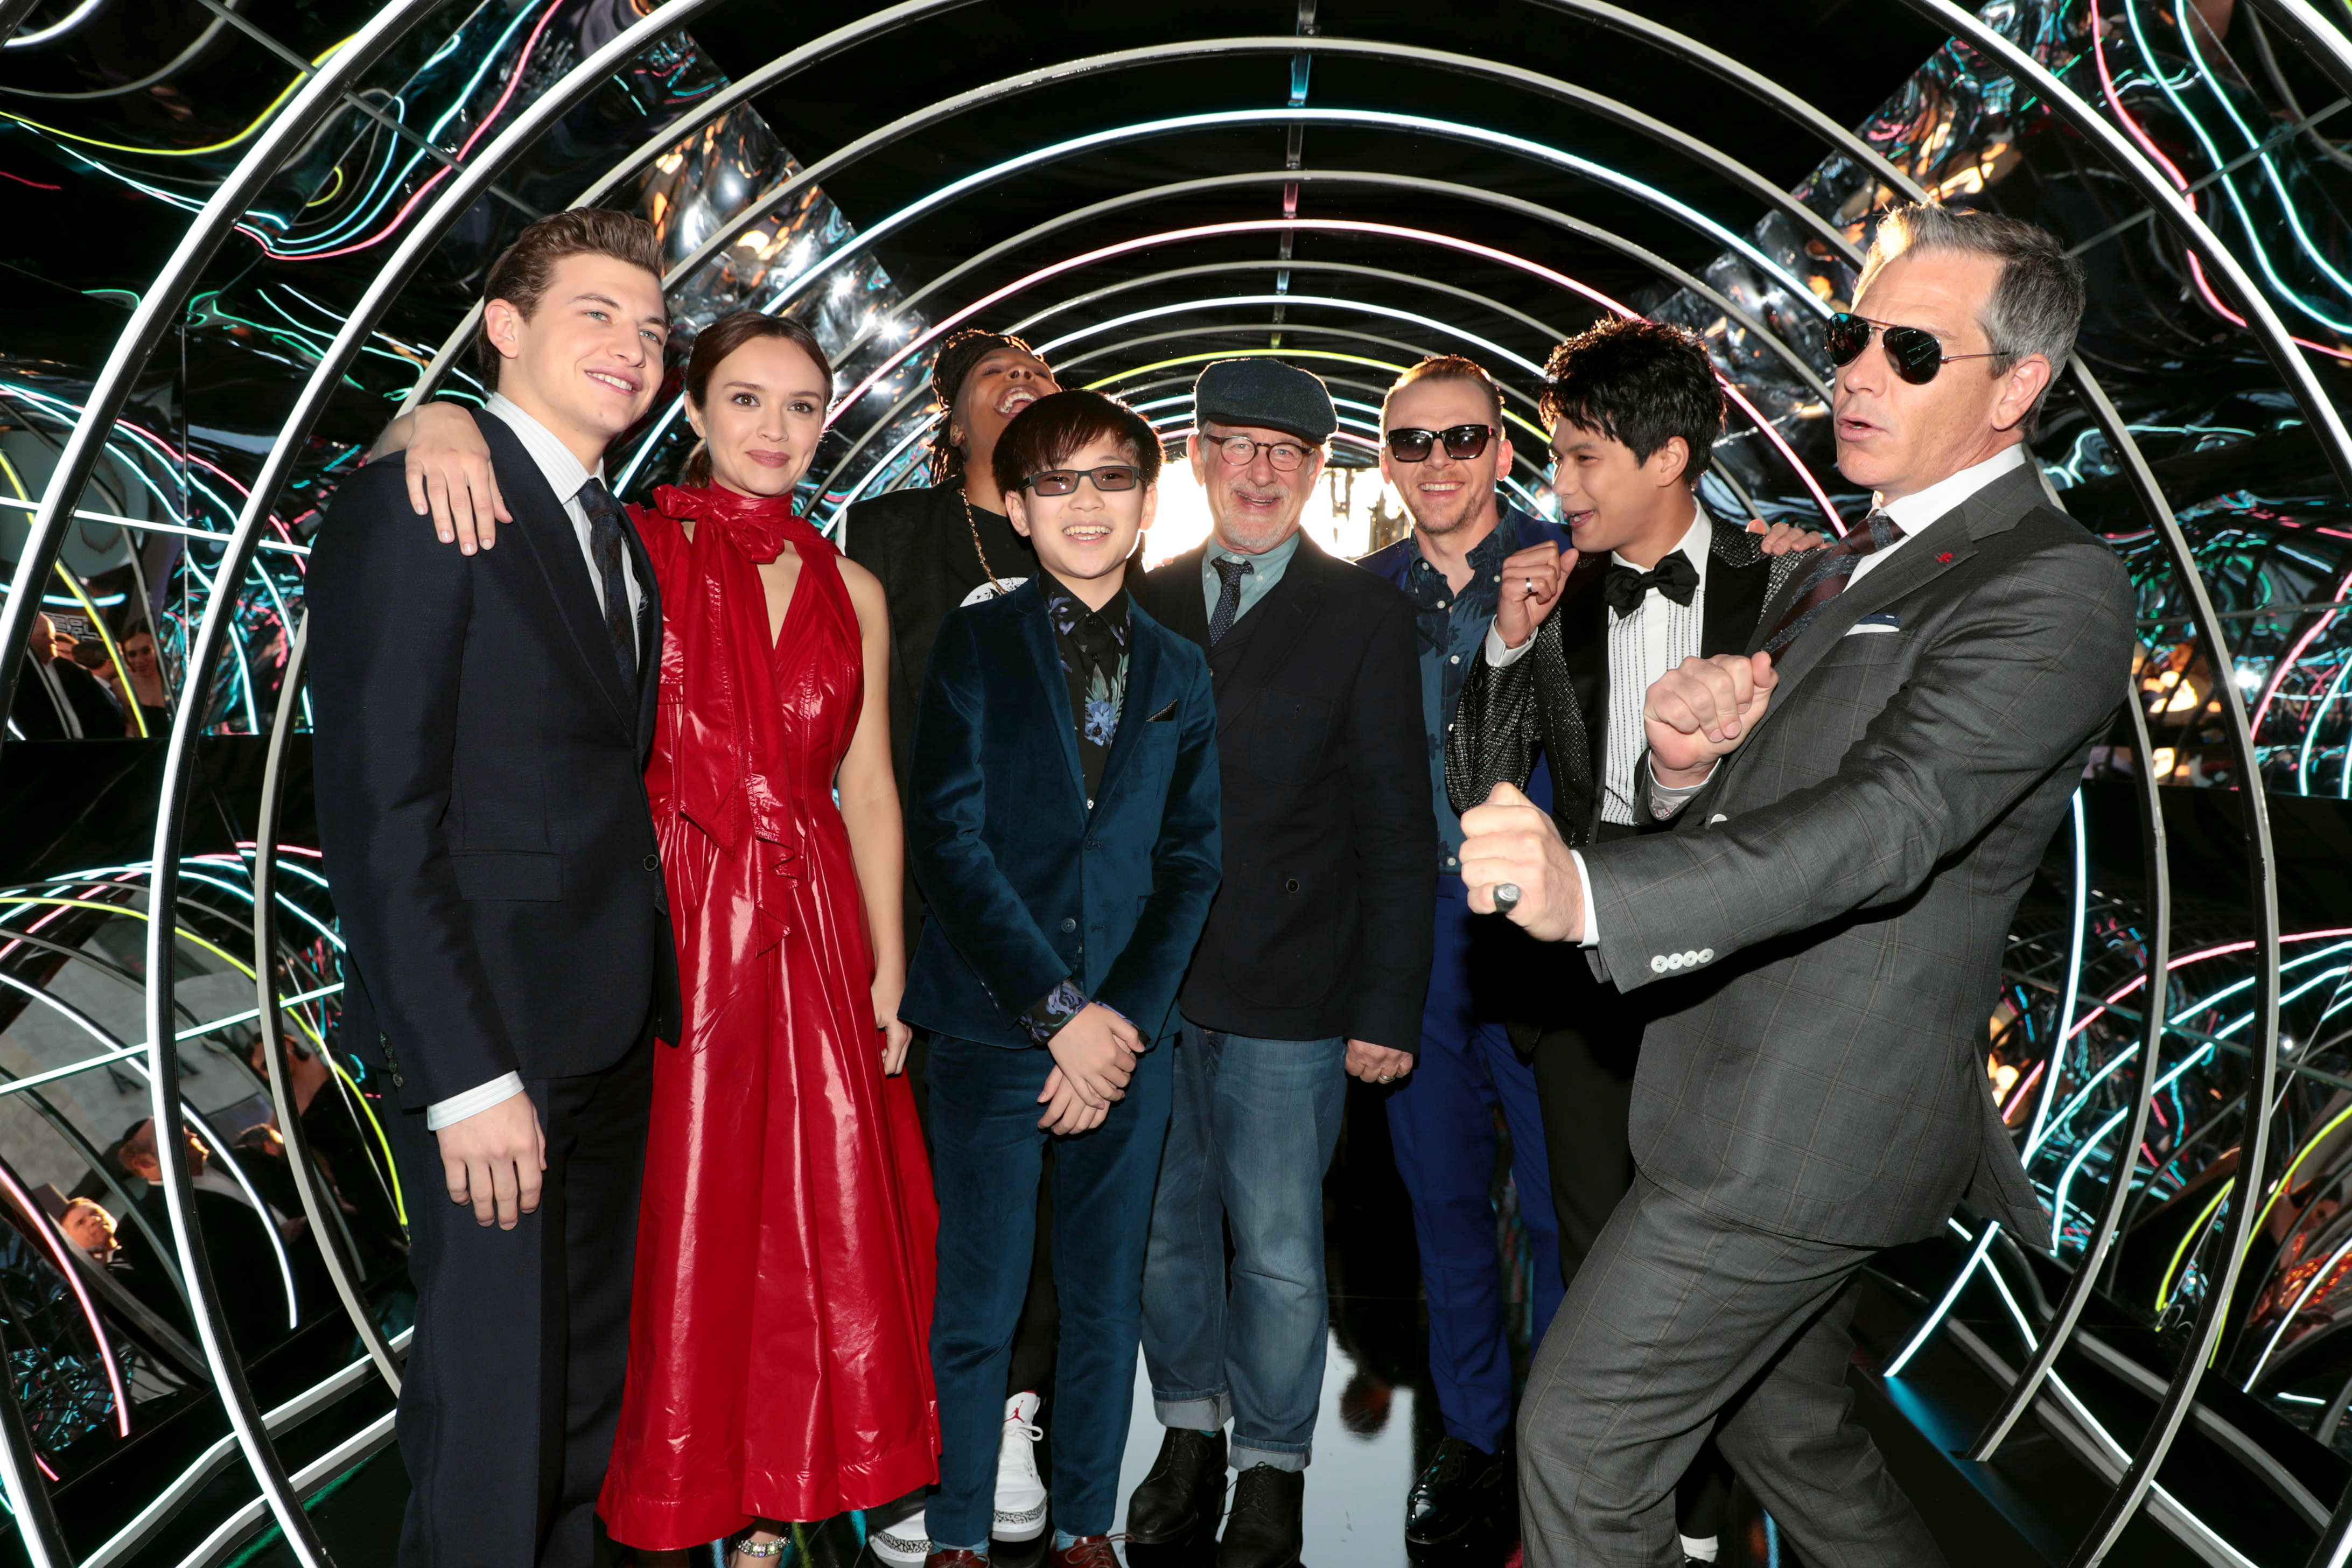 Tye Sheridan, Olivia Cooke, Lena Waithe, Philip Zhao, Steven Spielberg, Director, Simon Pegg, Win Morisaki, Ben Mendelsohn Warner Bros. Pictures World Premiere of 'Ready Player One' at The Dolby Theatre, Los Angeles, CA, USA - 26 March 2018